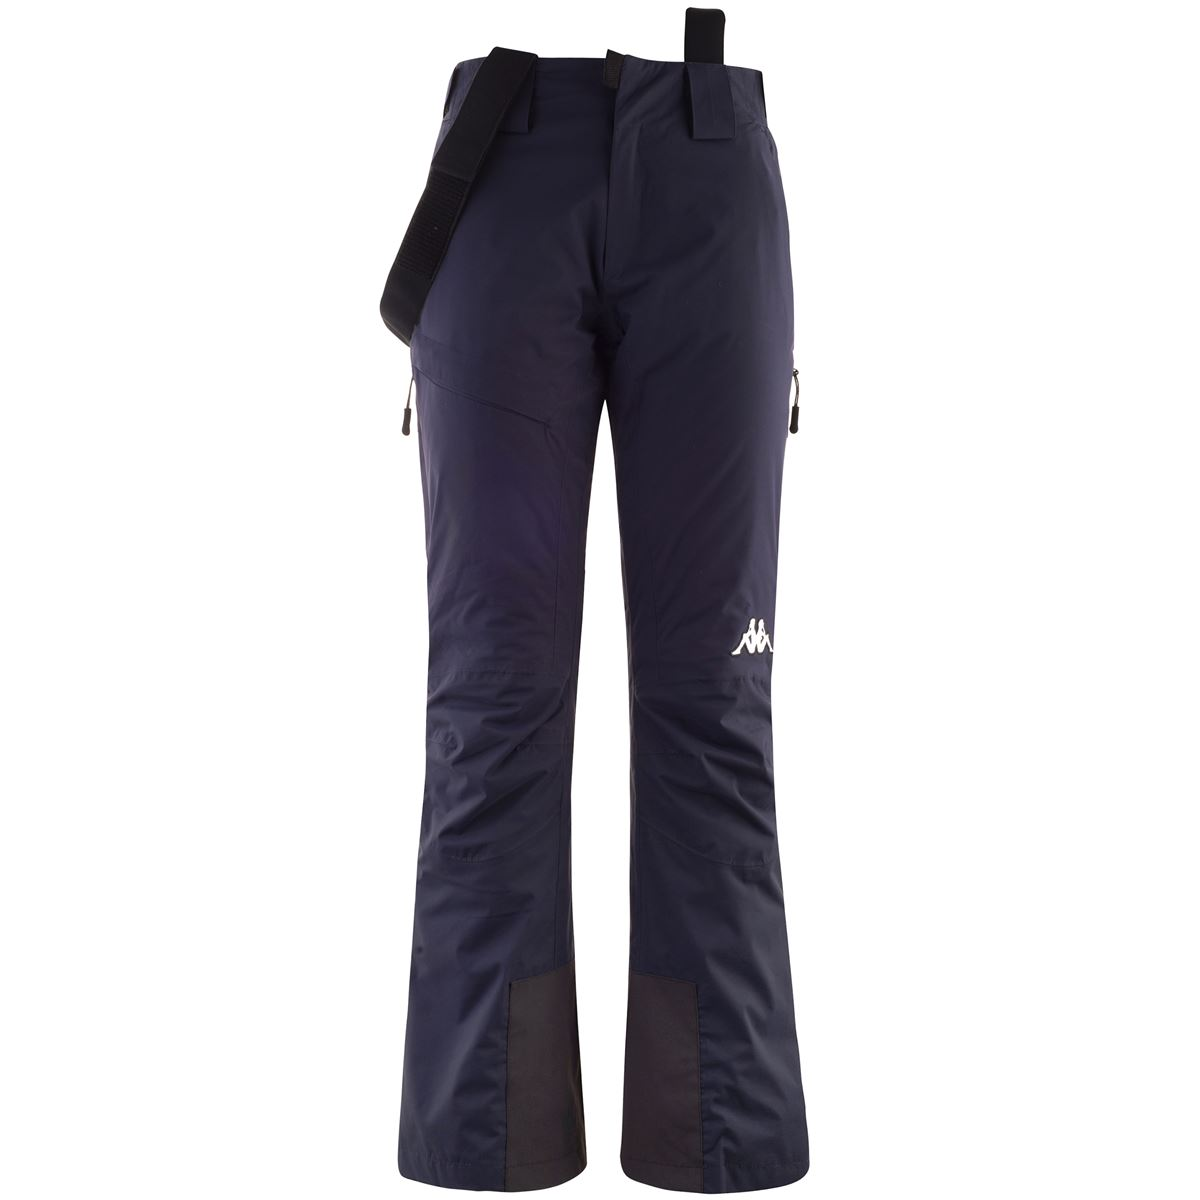 Kappa Pants 6CENTO 665A Woman Sport Trousers